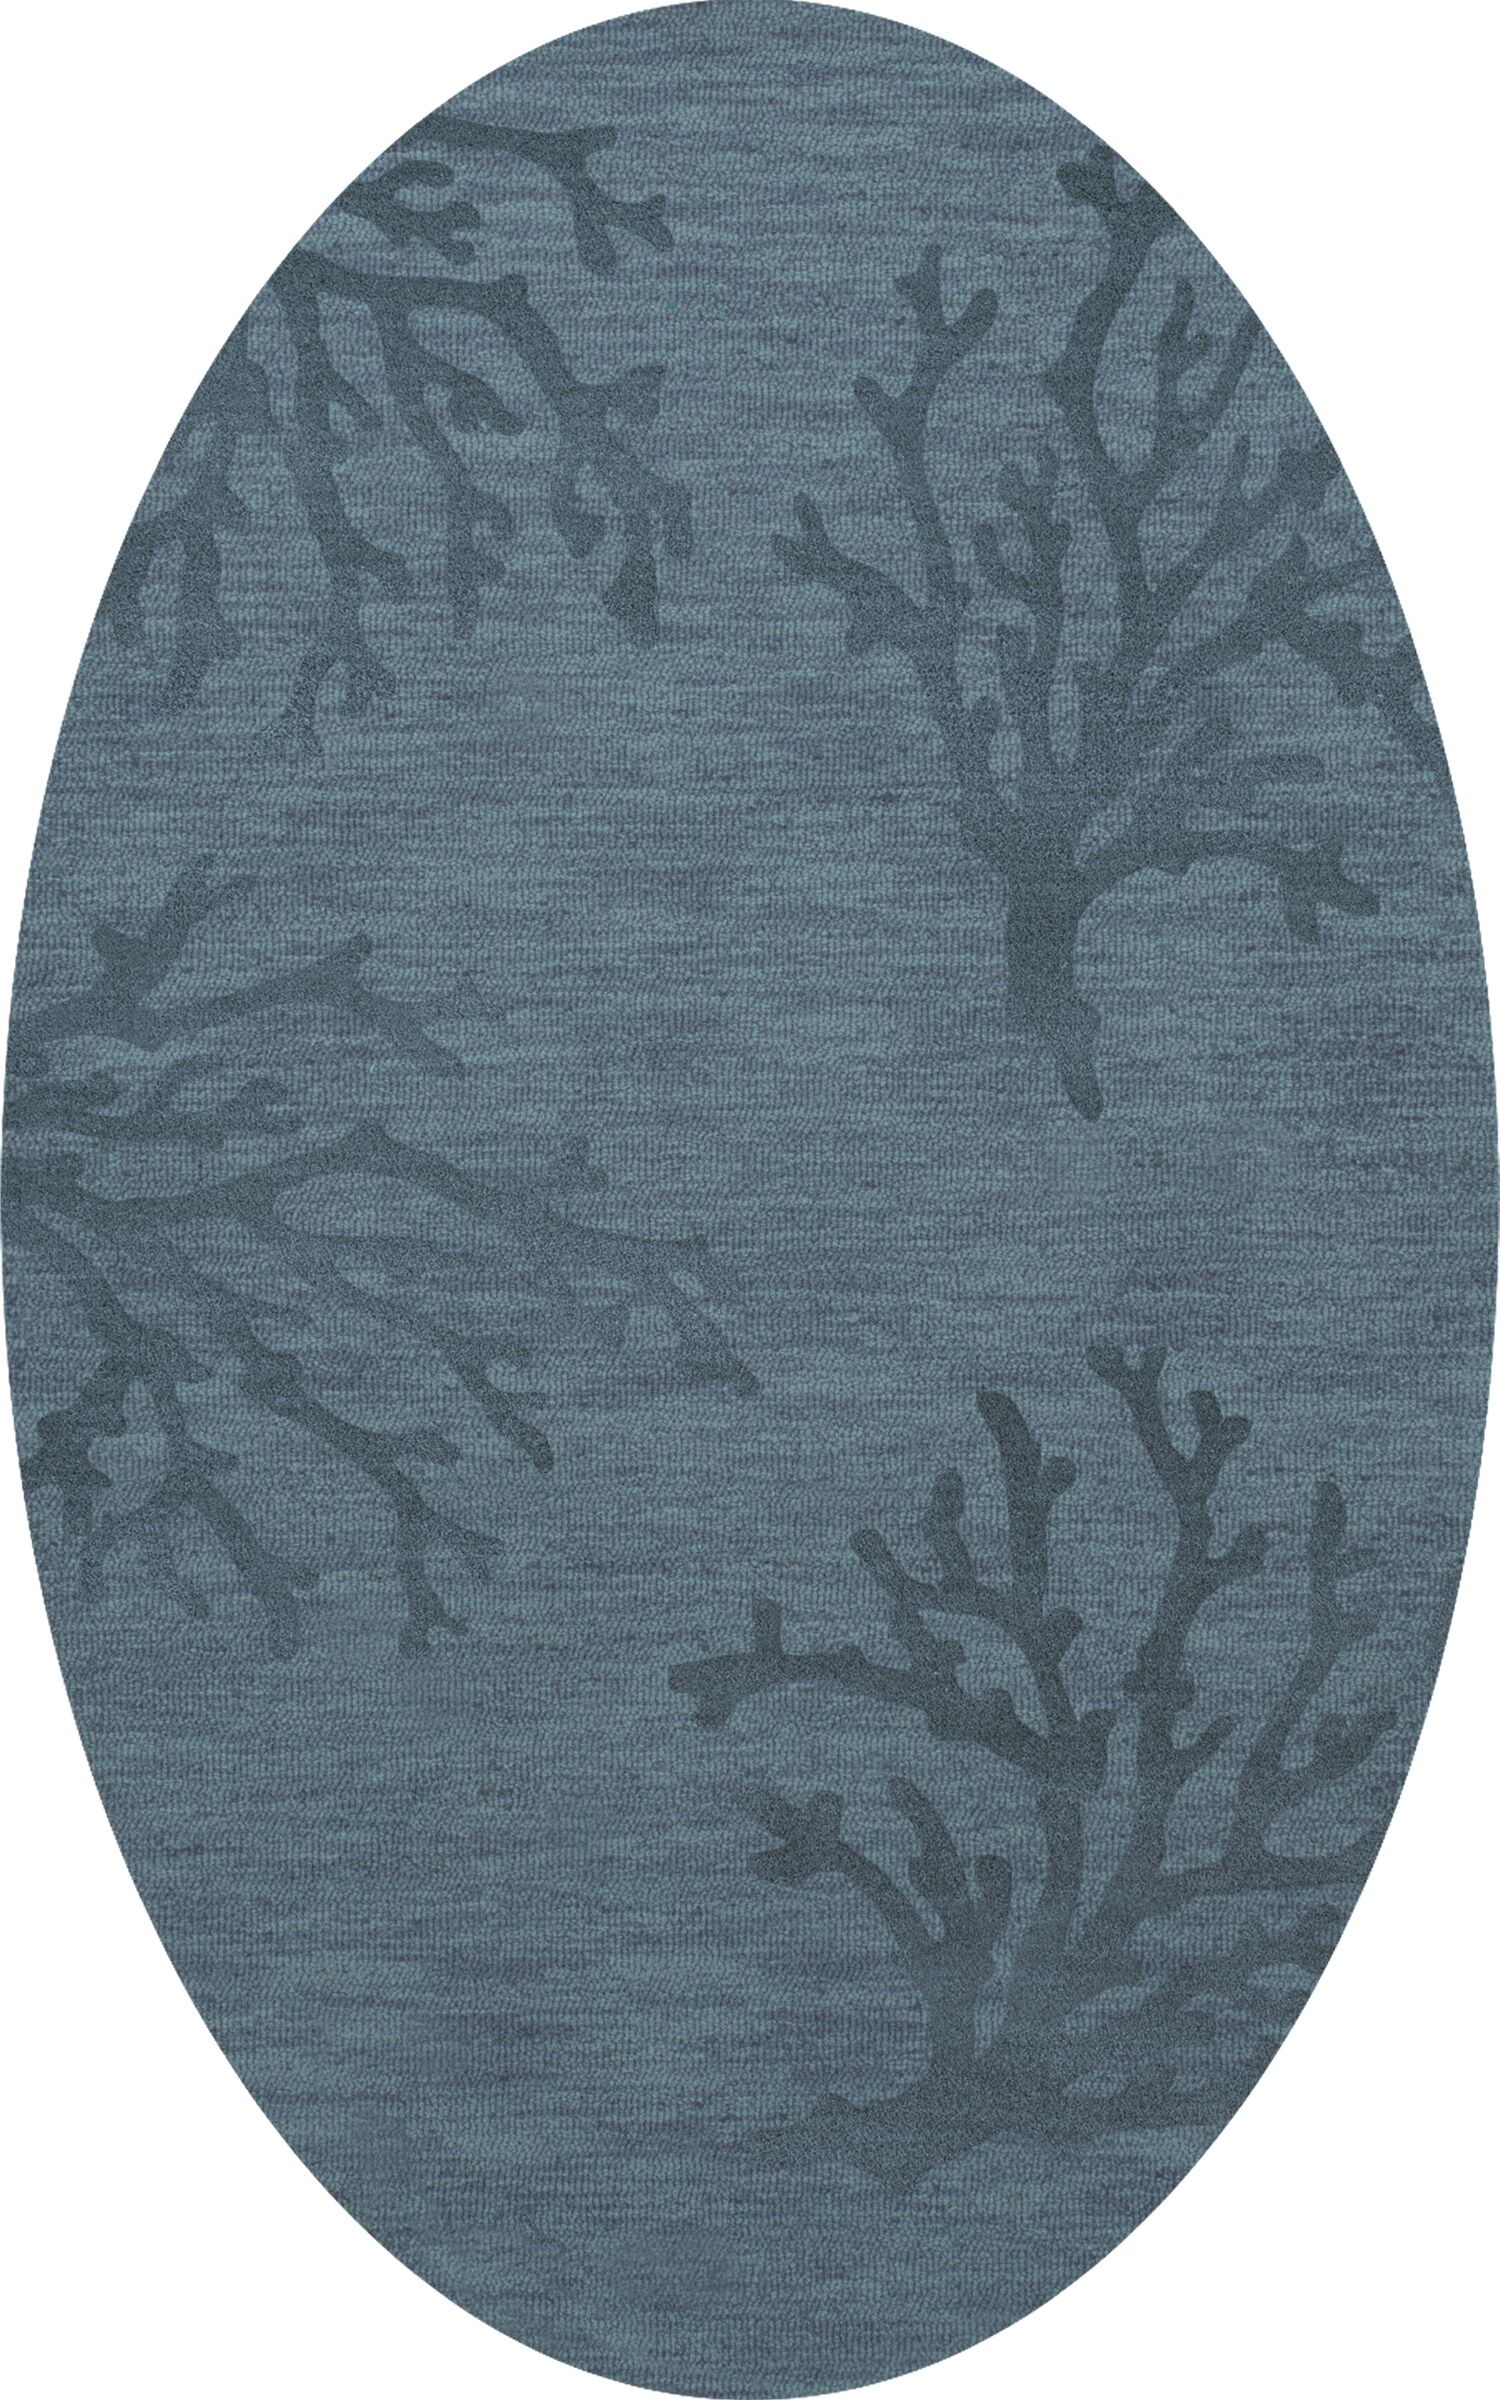 Bella Machine Woven Wool Blue Area Rug Rug Size: Oval 9' x 12'